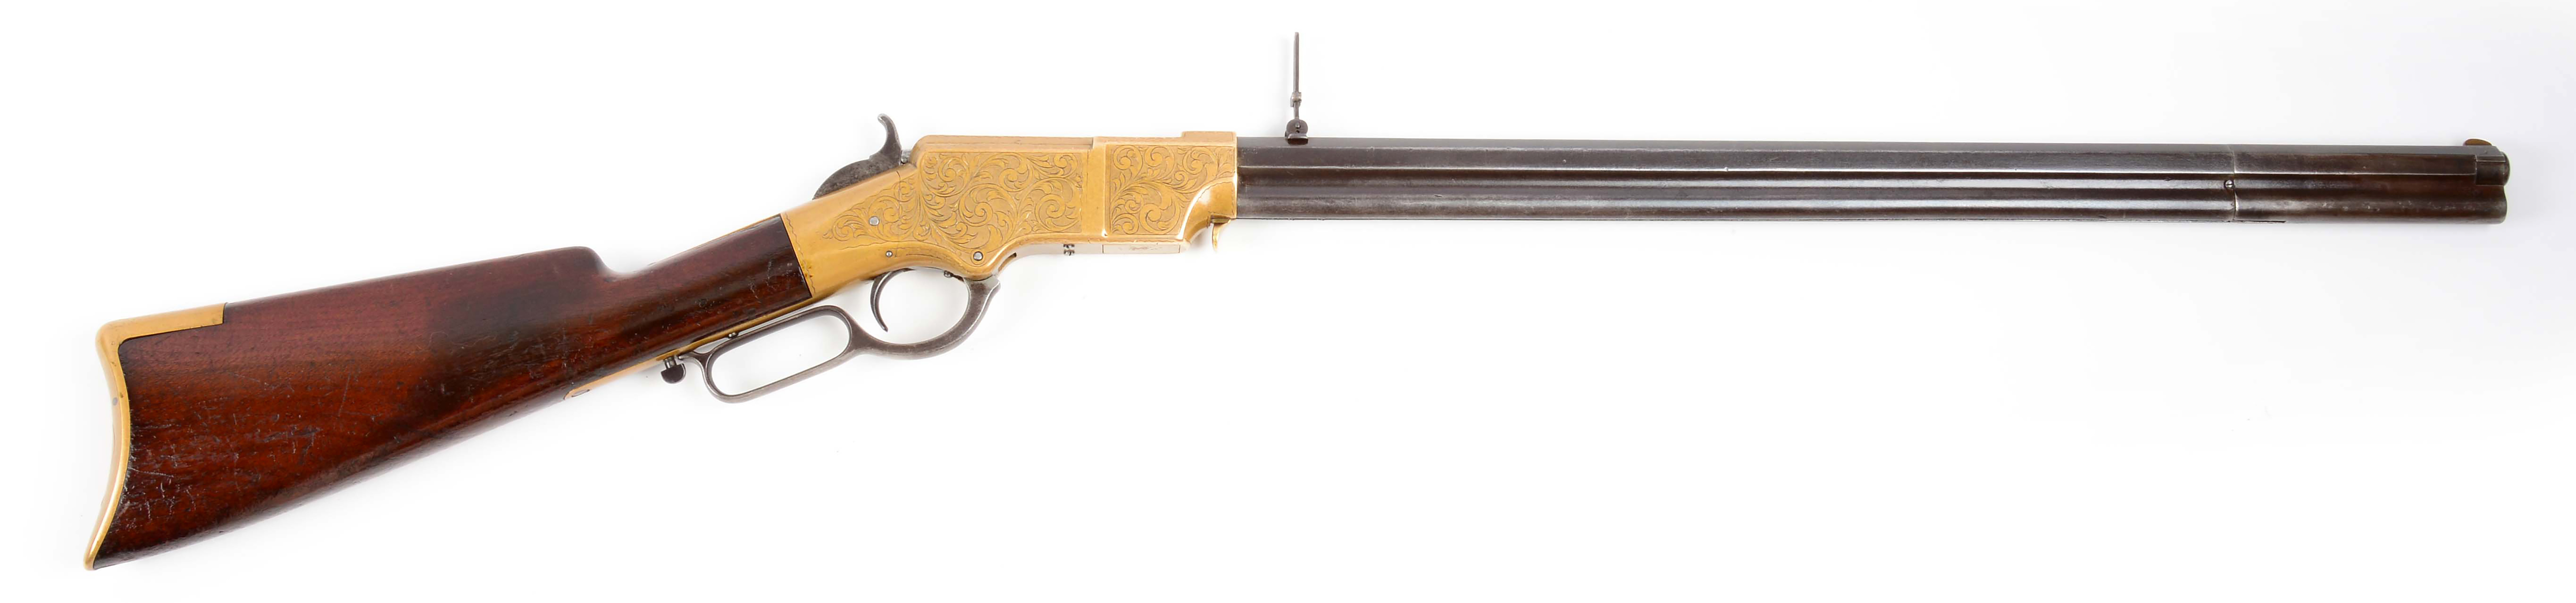 Morphy Auctions' Upcoming Firearms Sales Event to Feature a Fine